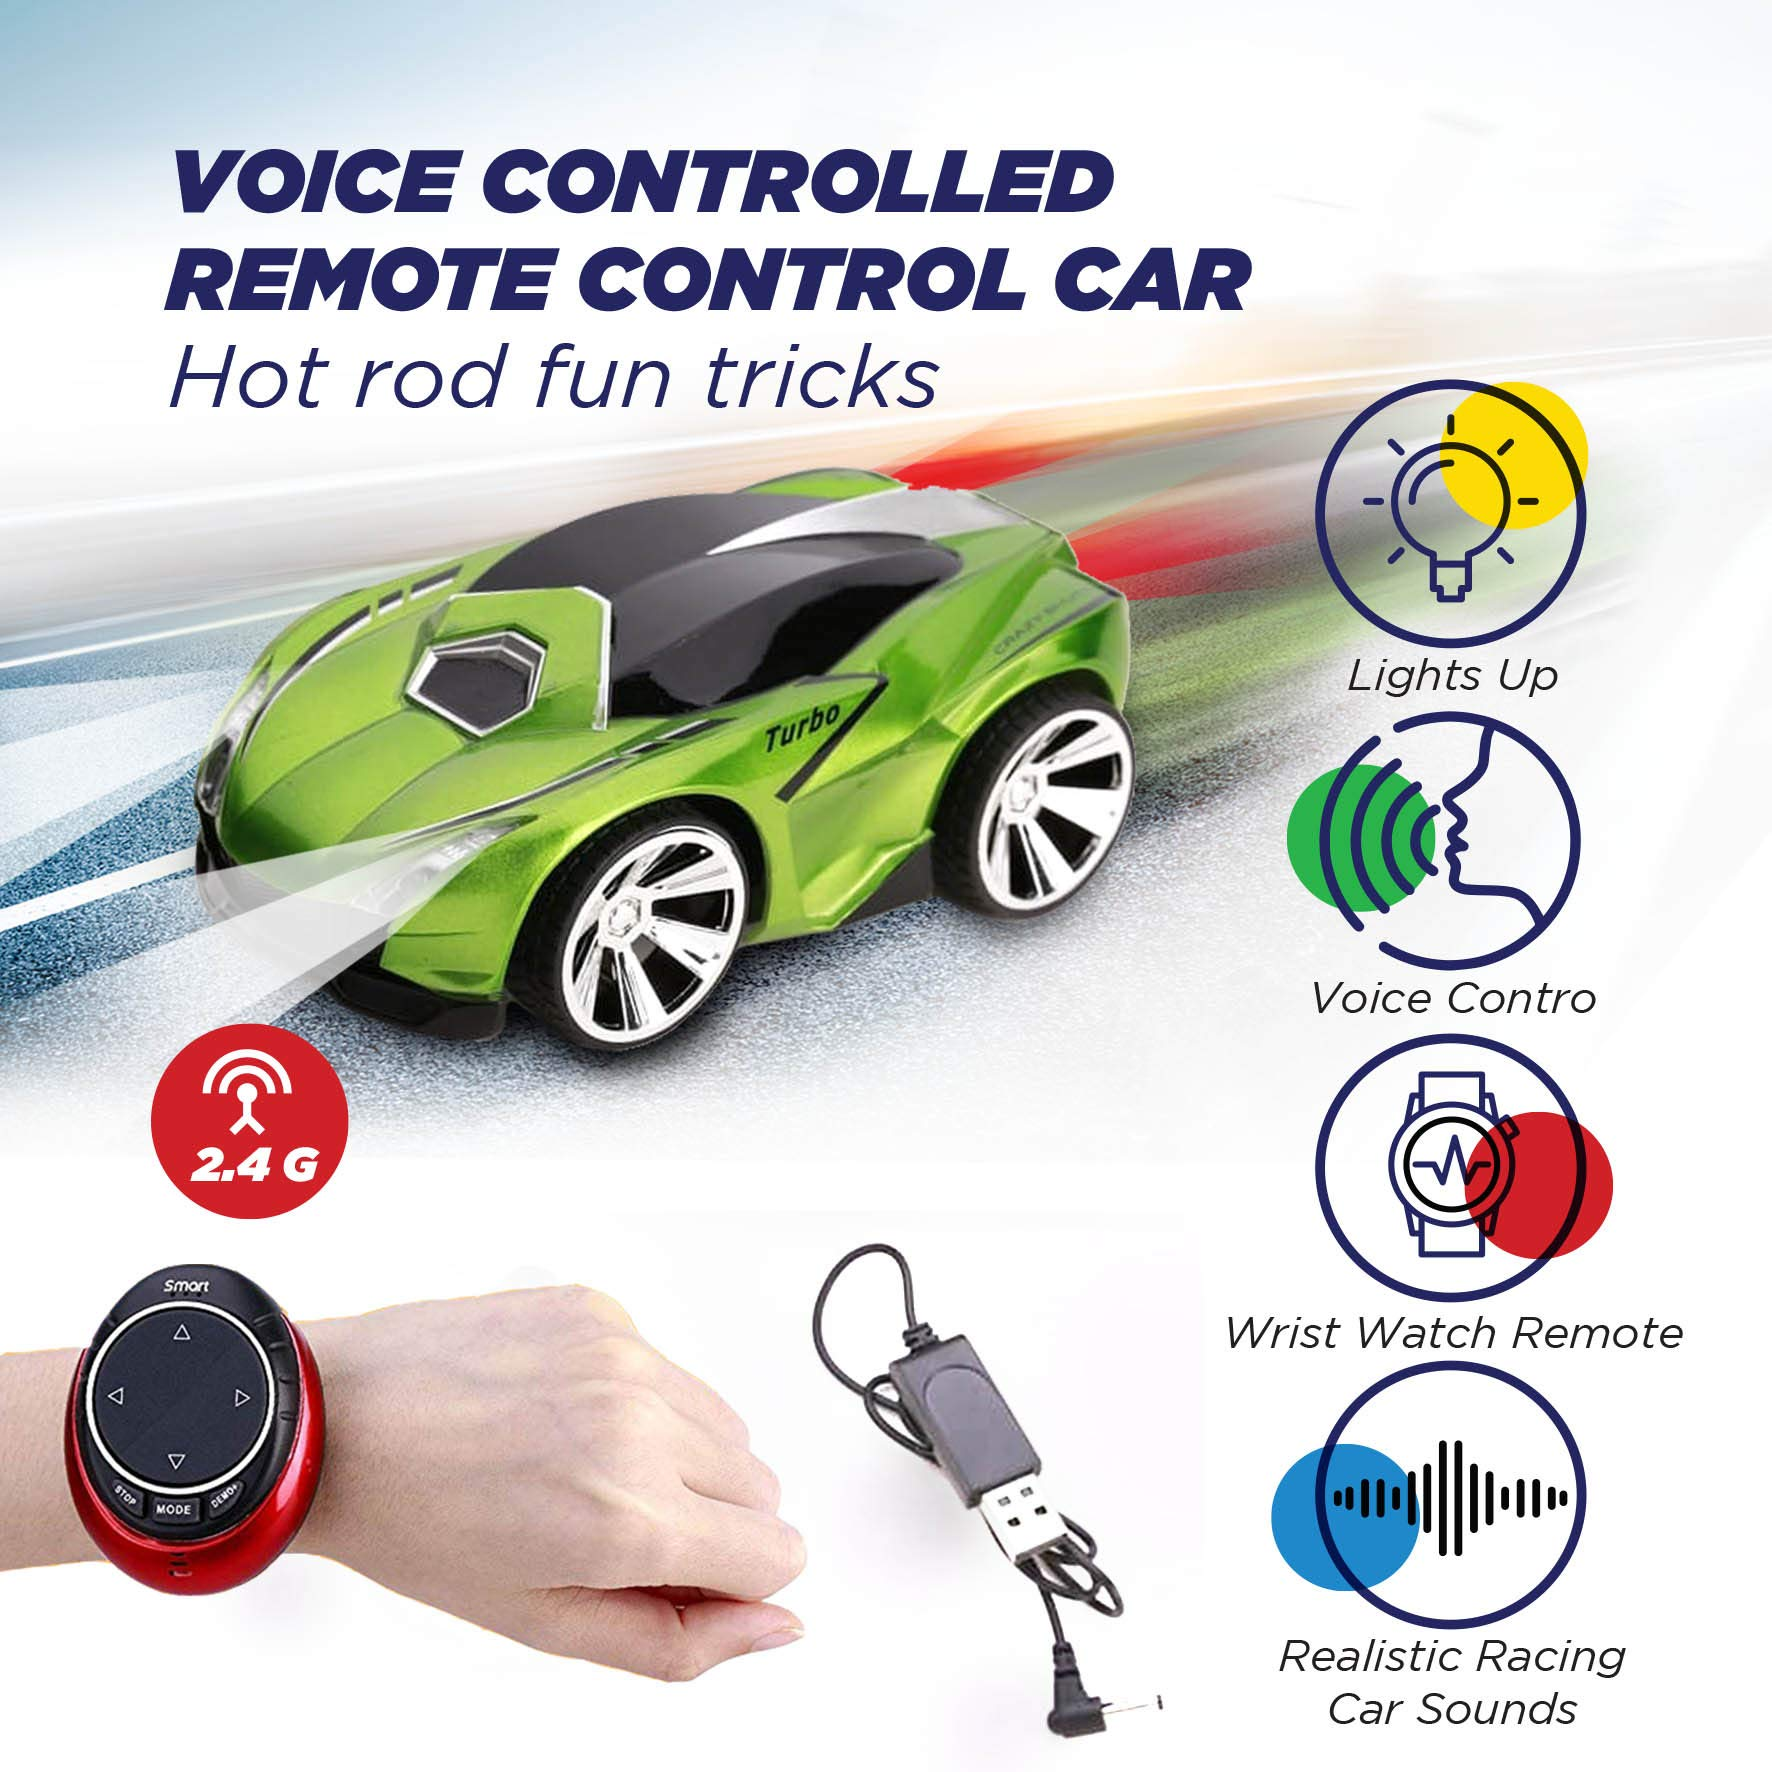 Remote Control Car with Voice Activation - Hand and Voice Activated Wrist RC Smart Watch - Rechargeable Race Car with USB Cable for Kids - Super Action Light Effects - Green - wiihuu